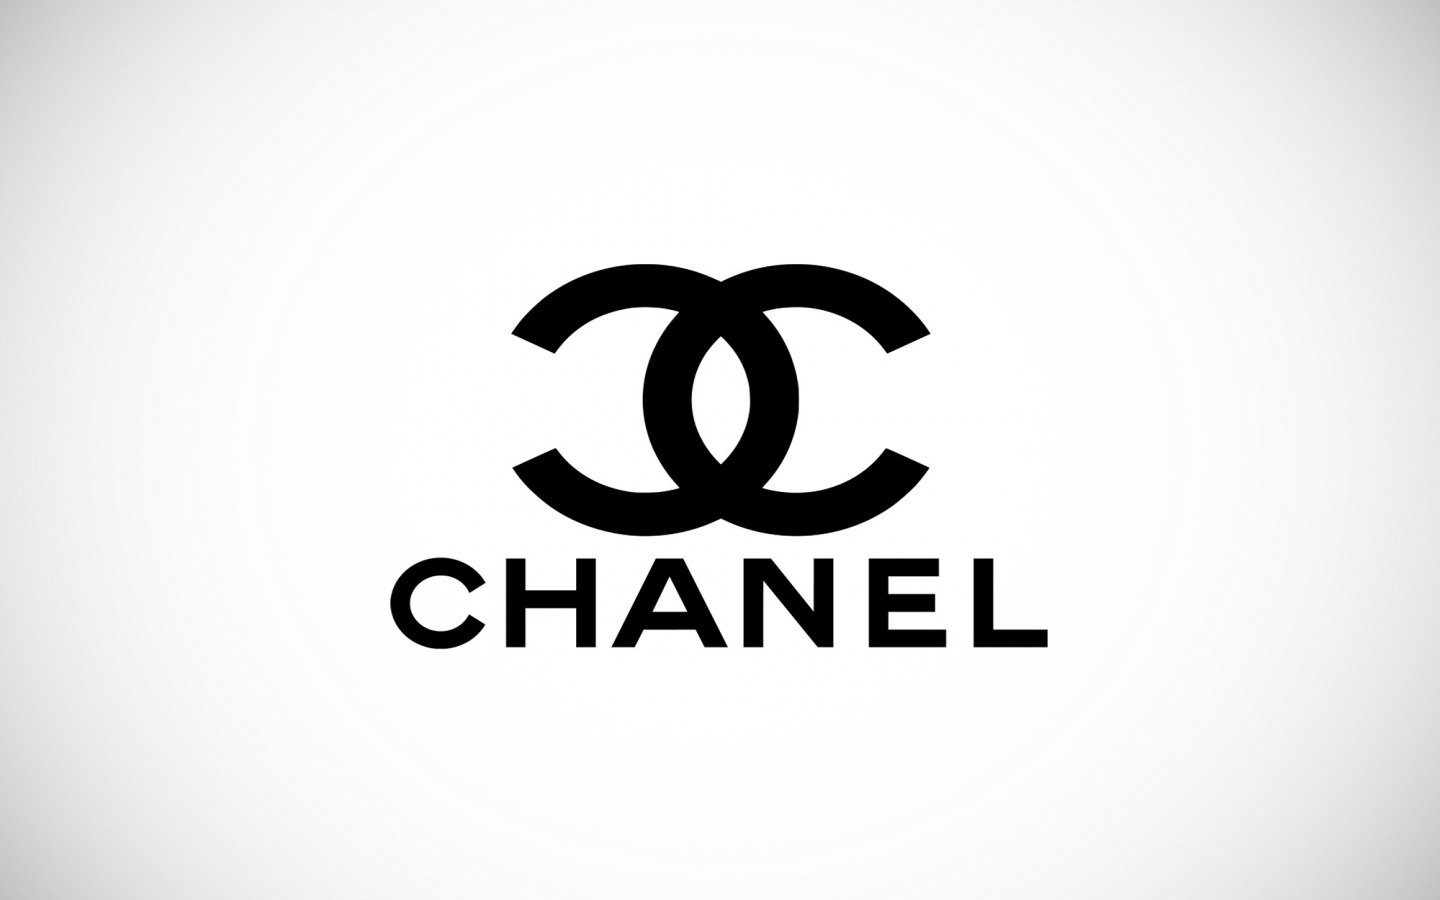 Collection of Chanel Logo Wallpaper on HDWallpapers